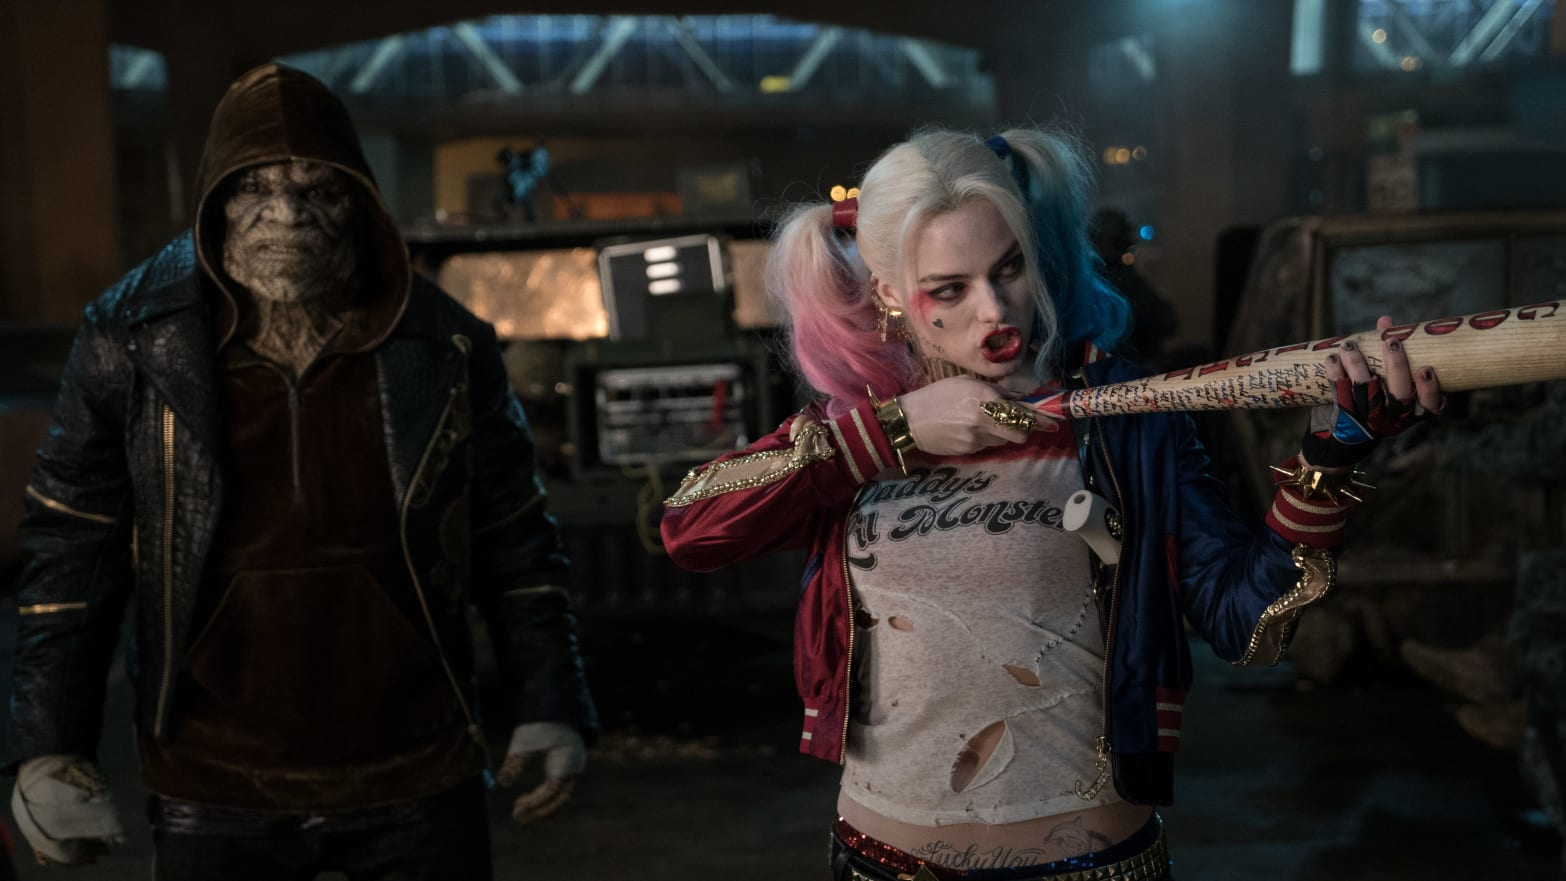 a6ba45ee0 Suicide Squad' Review: Harley Quinn's Big-Screen Debut Is a Dizzying ...